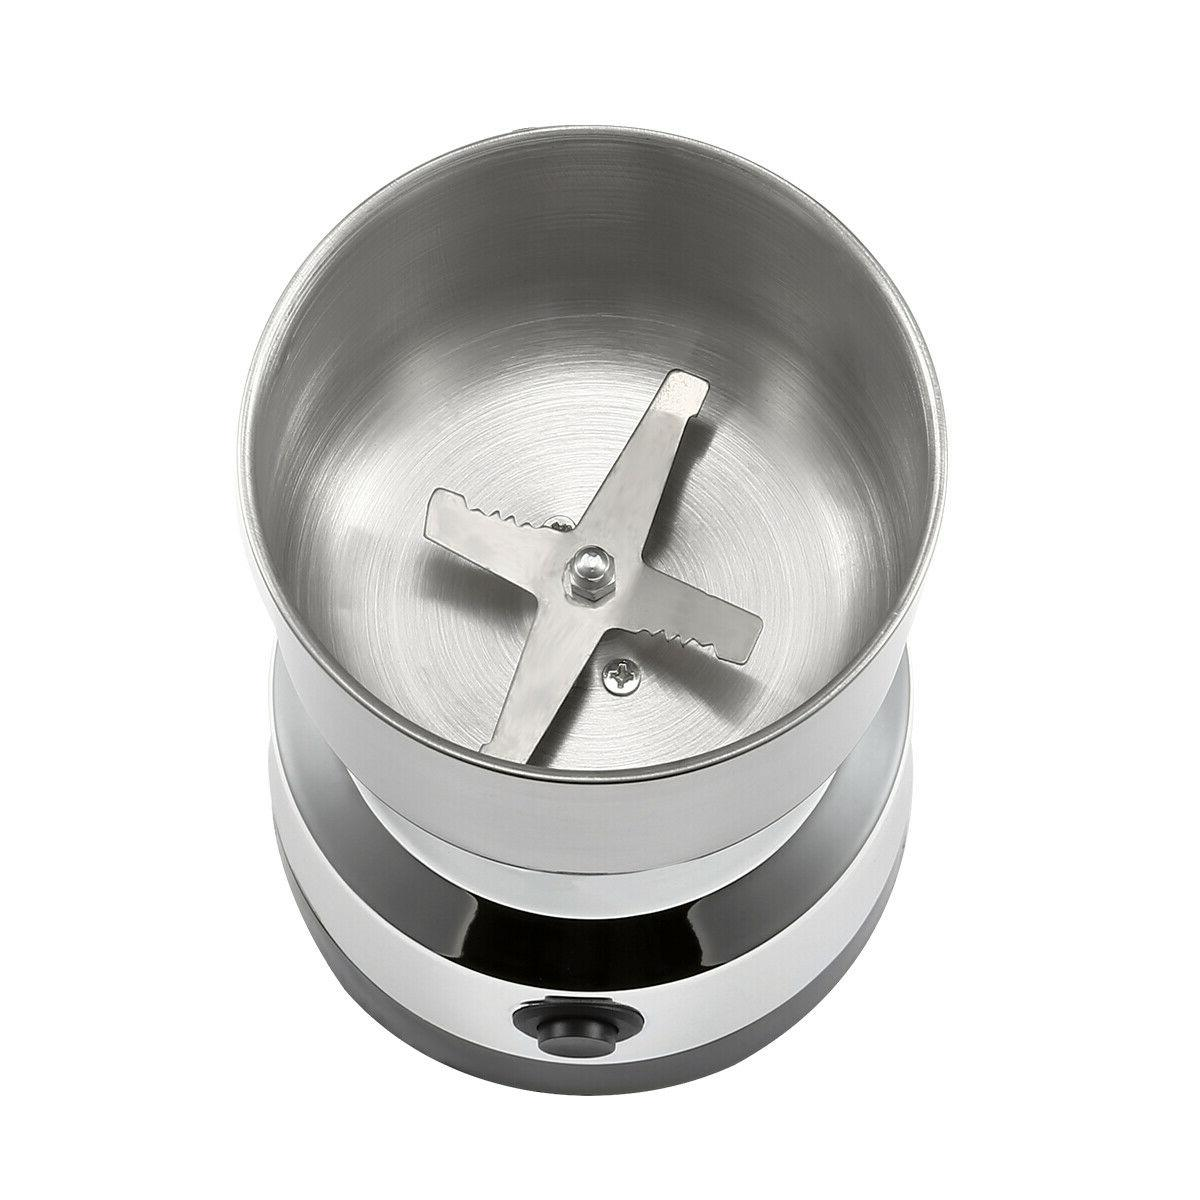 Electric Bean Grinder Nut Seed Spice Mill USA